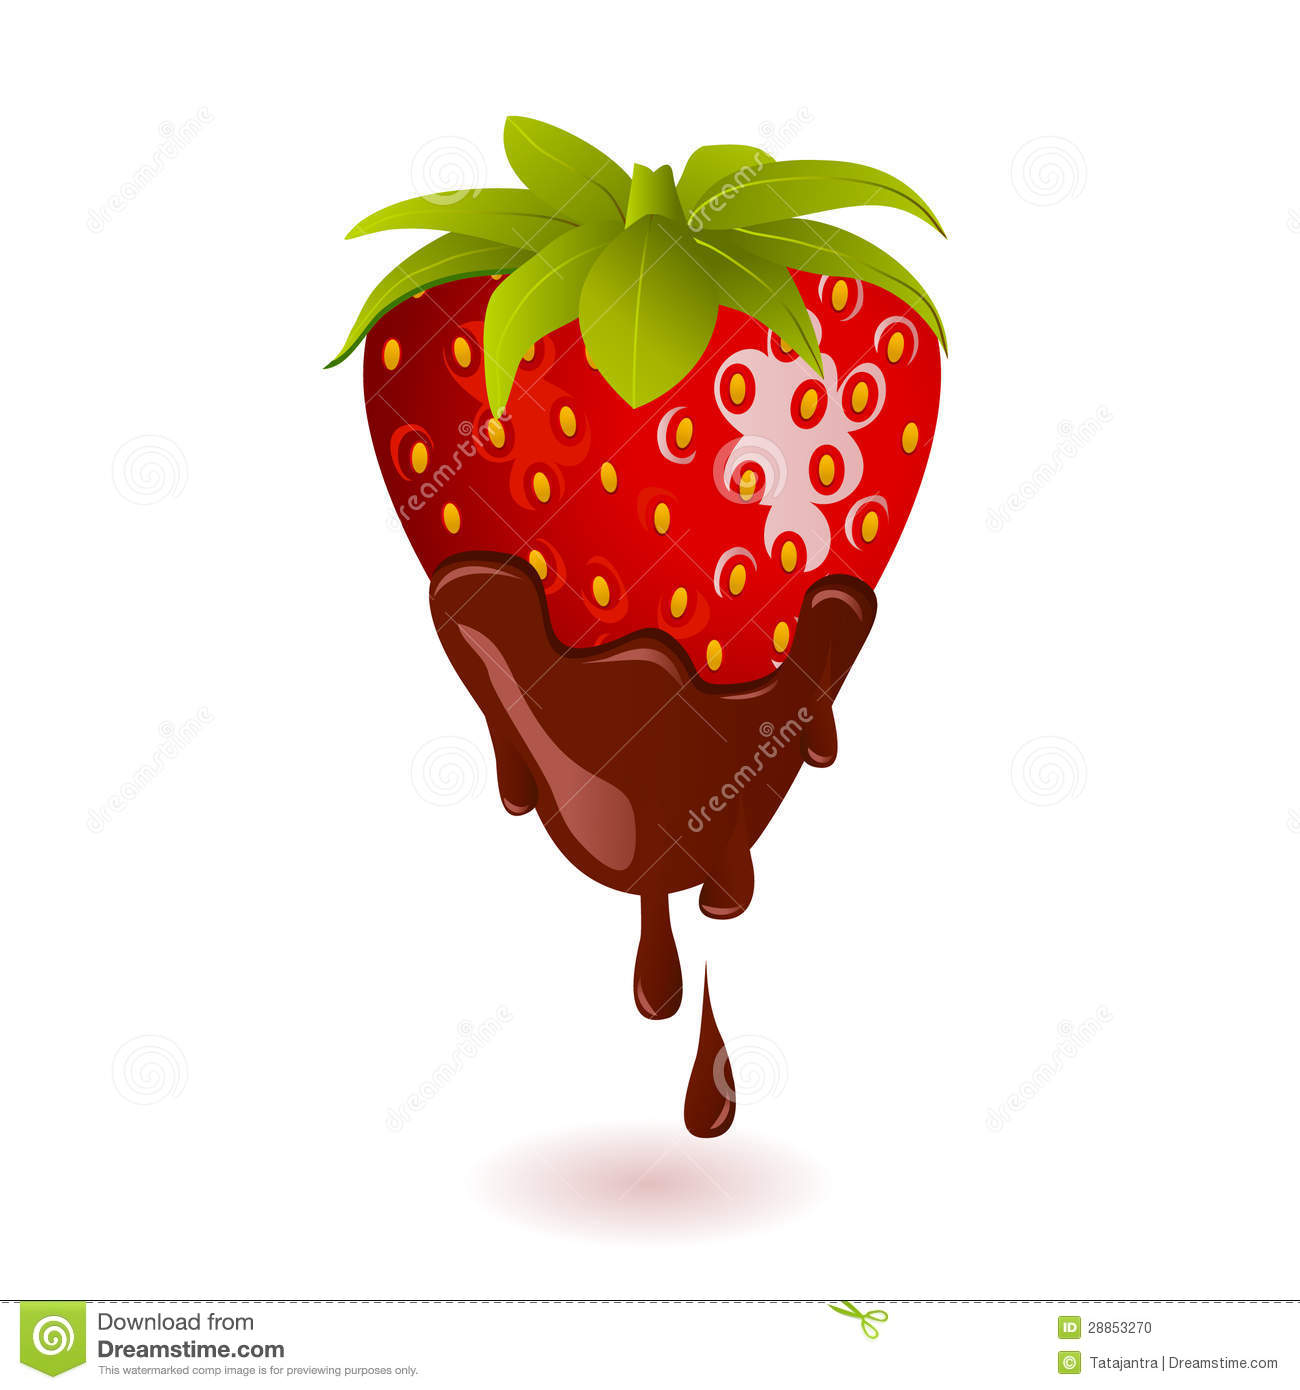 Clipart chocolate covered strawberries graphic royalty free Chocolate Dipped Strawberry Stock Vector - #447263 - Clipartimage.com graphic royalty free